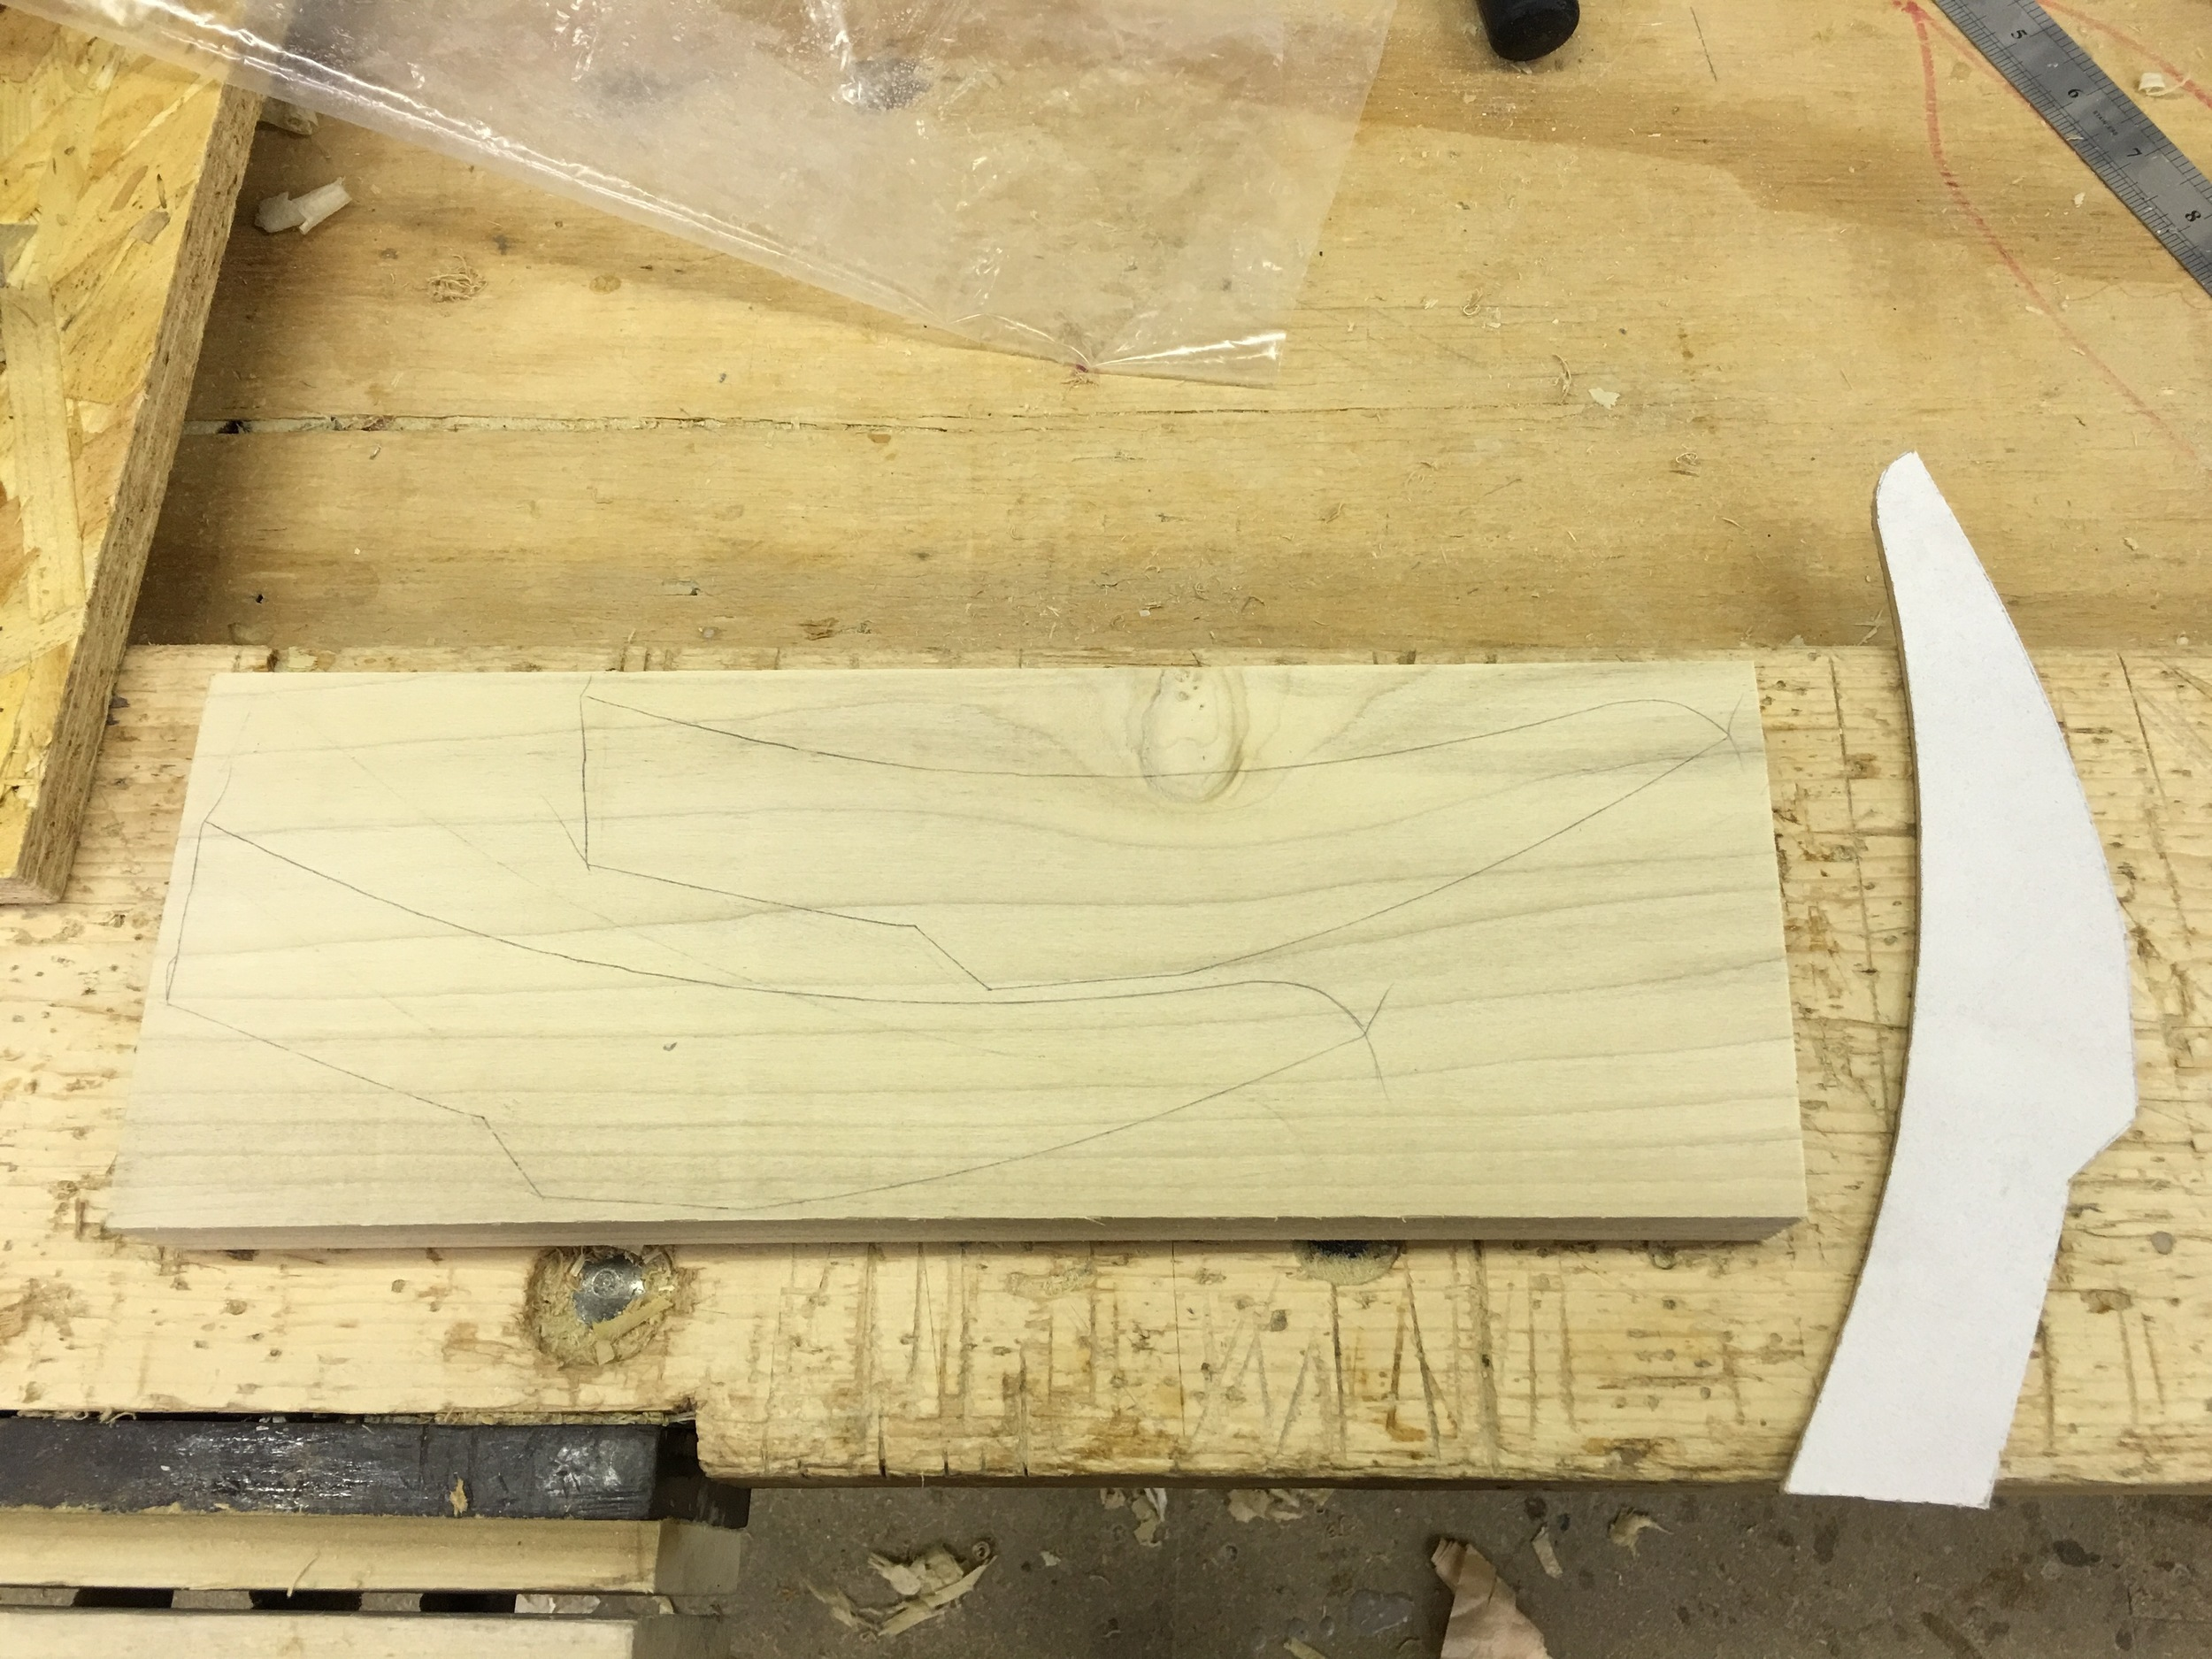 My template and template nesting in a block of wood